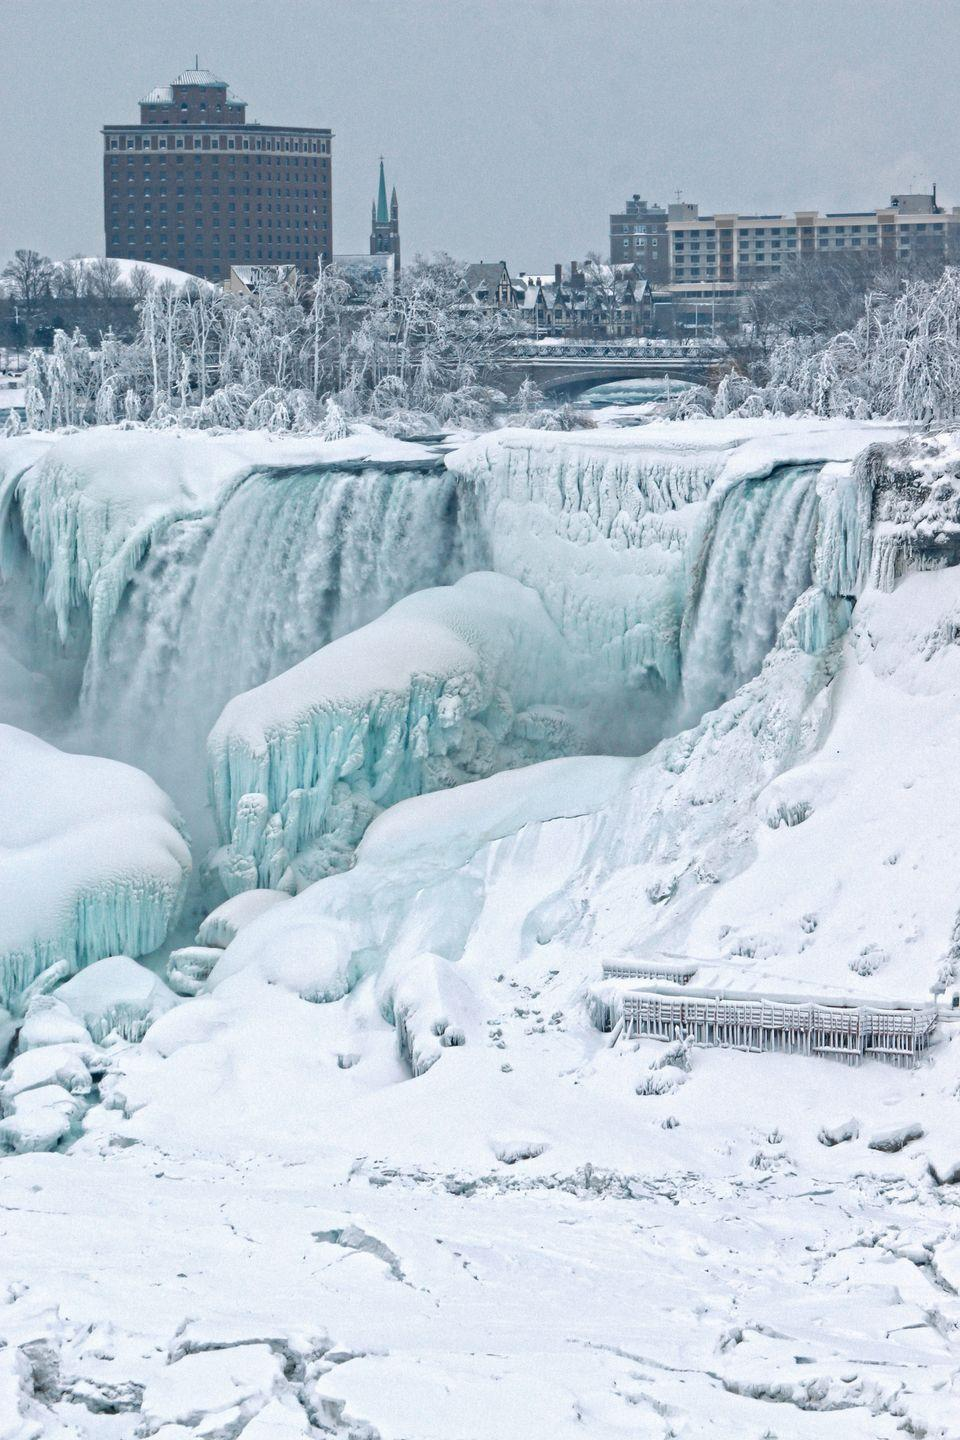 <p>While cold temps don't completely stop the flow of the powerful Niagara Falls on the New York/Canada border, pieces of the famous landmark do freeze to create some magical scenery. </p>